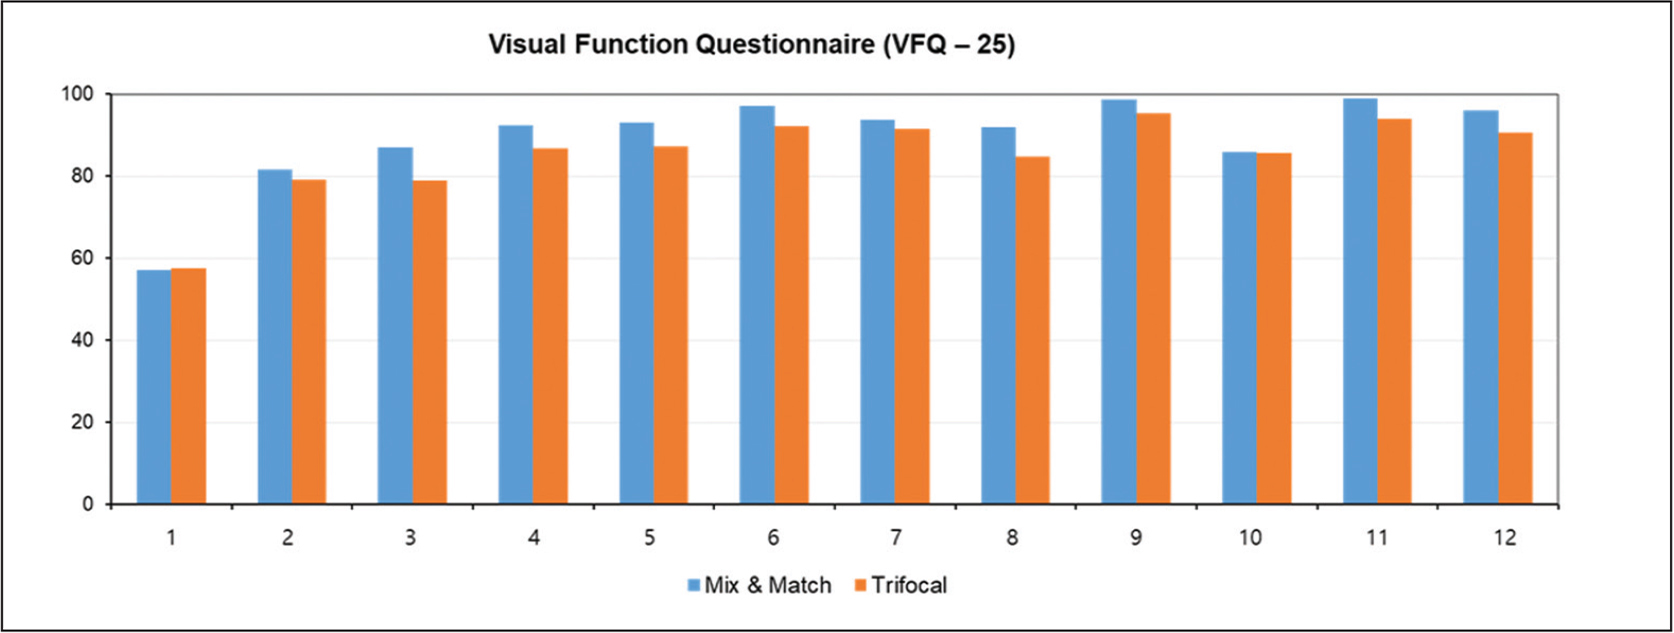 Results of the Visual Function Questionnaire for the mixand-match group and the trifocal group.